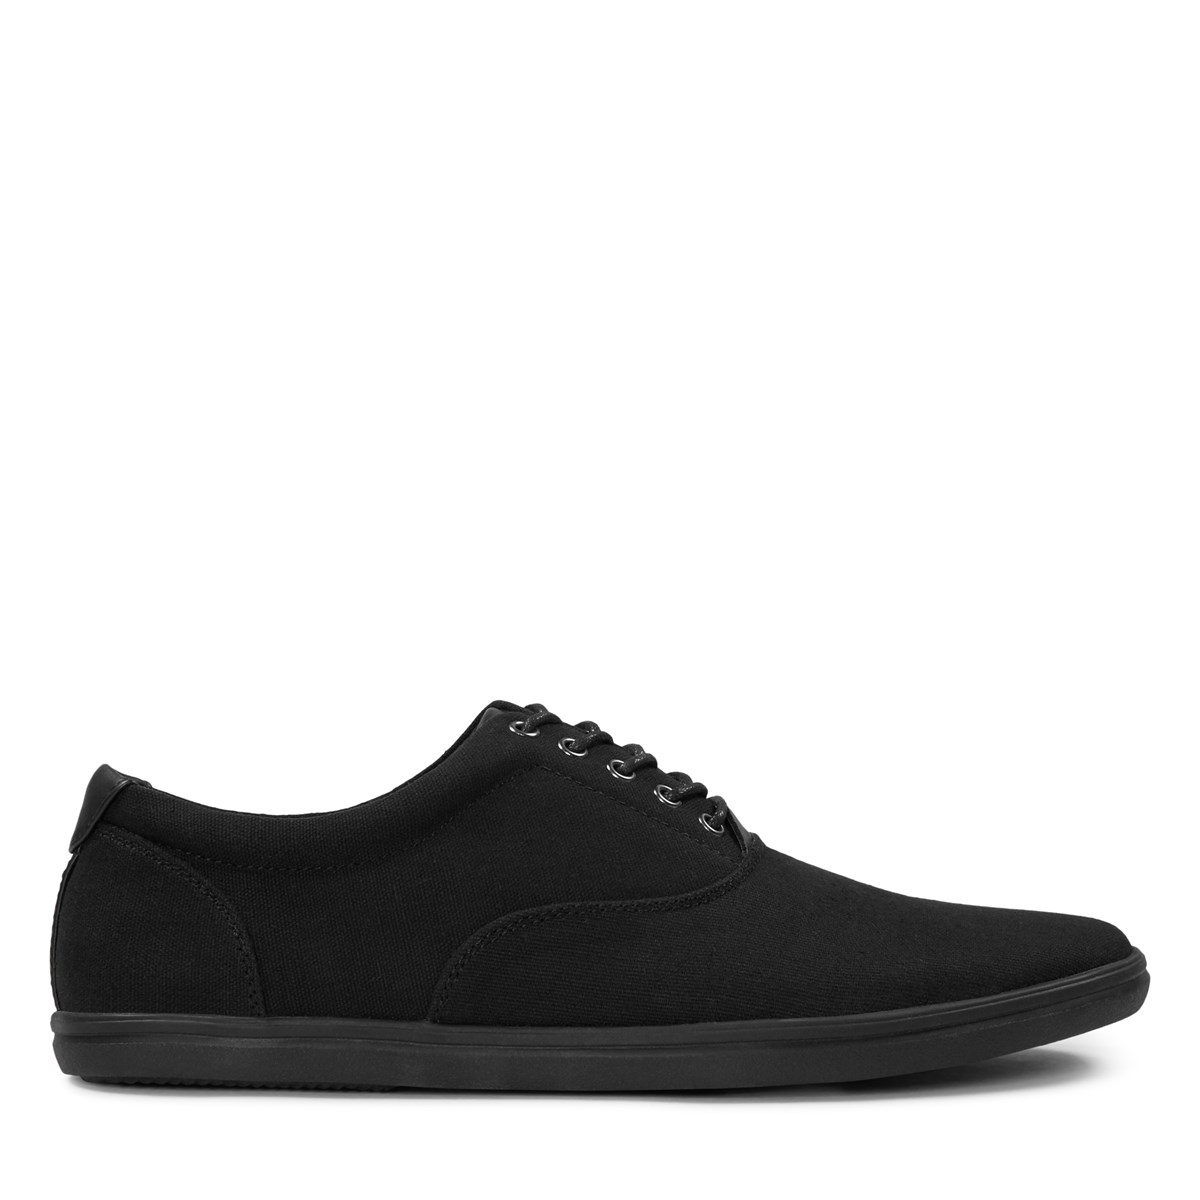 Men's Gustavo Black Lace-up Shoe